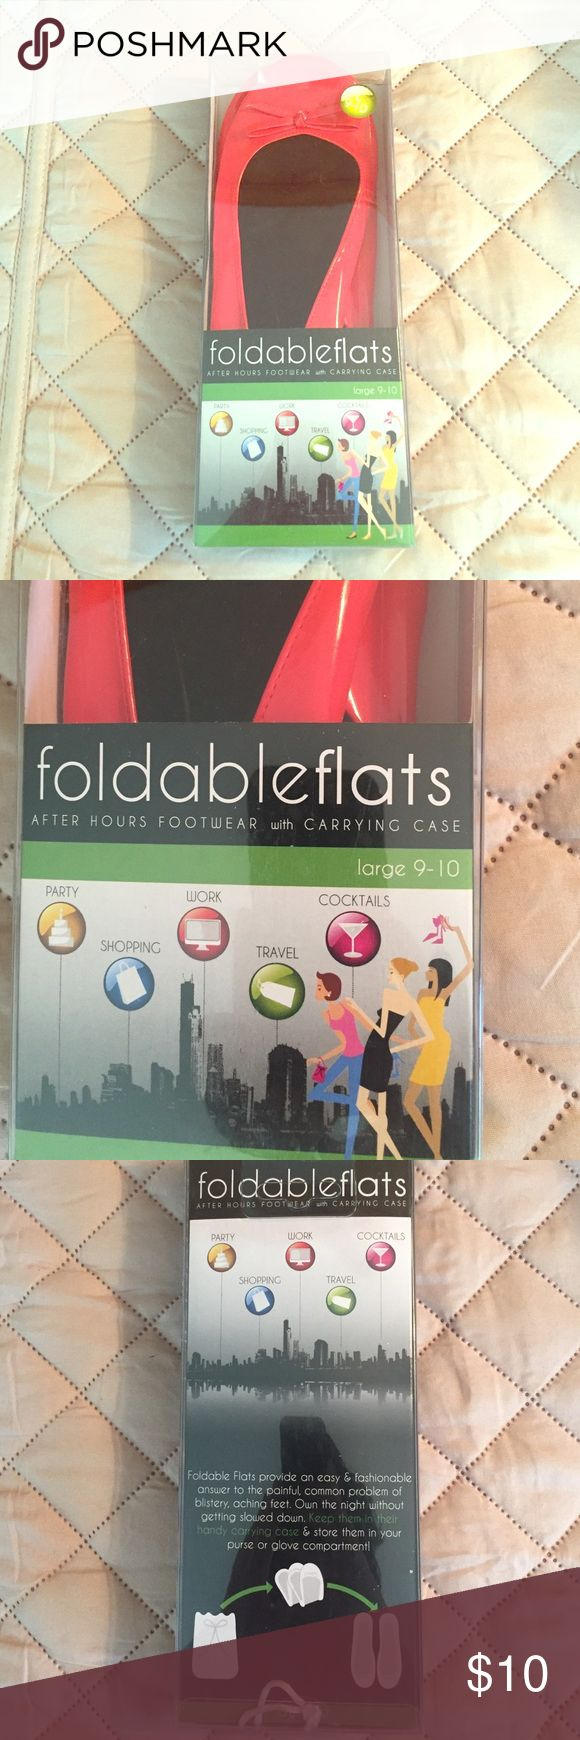 Foldable flats with carrying case Foldable flats with carrying case in red. Fits size 9-10. Perfect to keep in your bag for a night out! Happy to include as a freebie with another purchase from my closet. Foldable flats Shoes Flats & Loafers